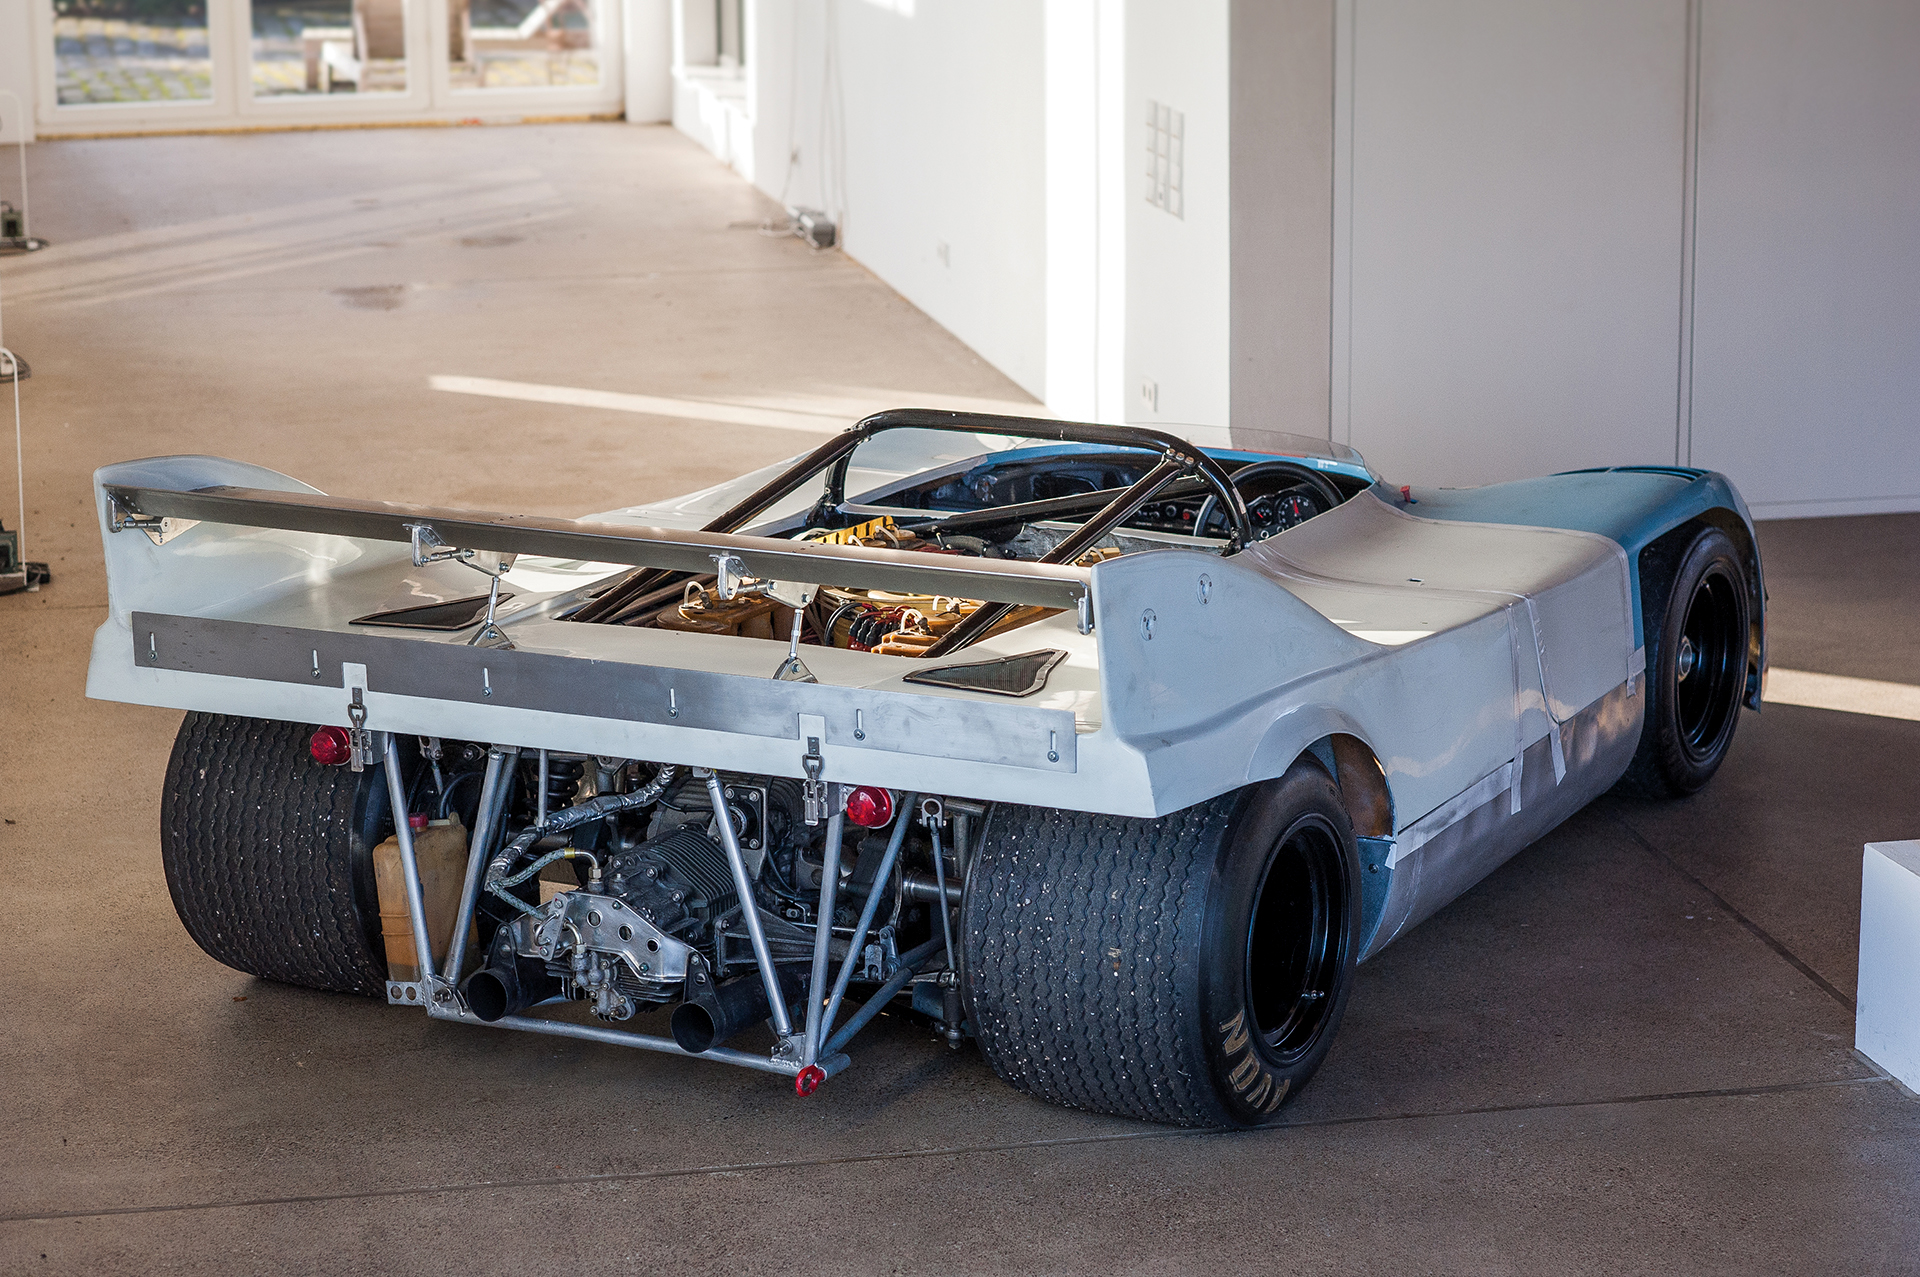 Porsche s First 917 Can Am Spyder To Sell For Up To $6 Million The